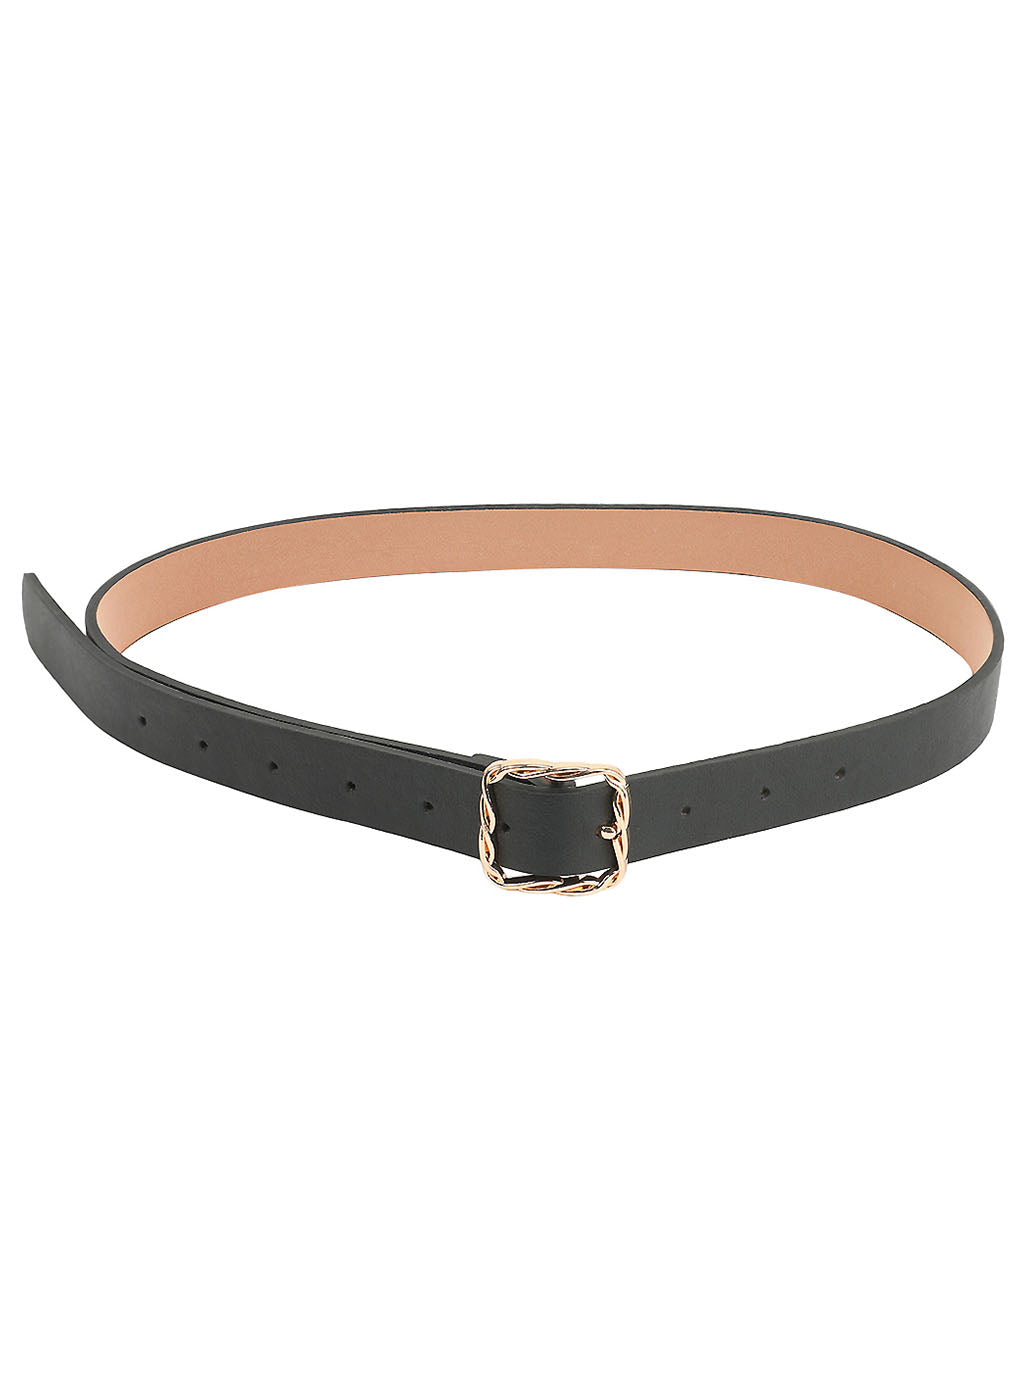 Bibi Thin Belt